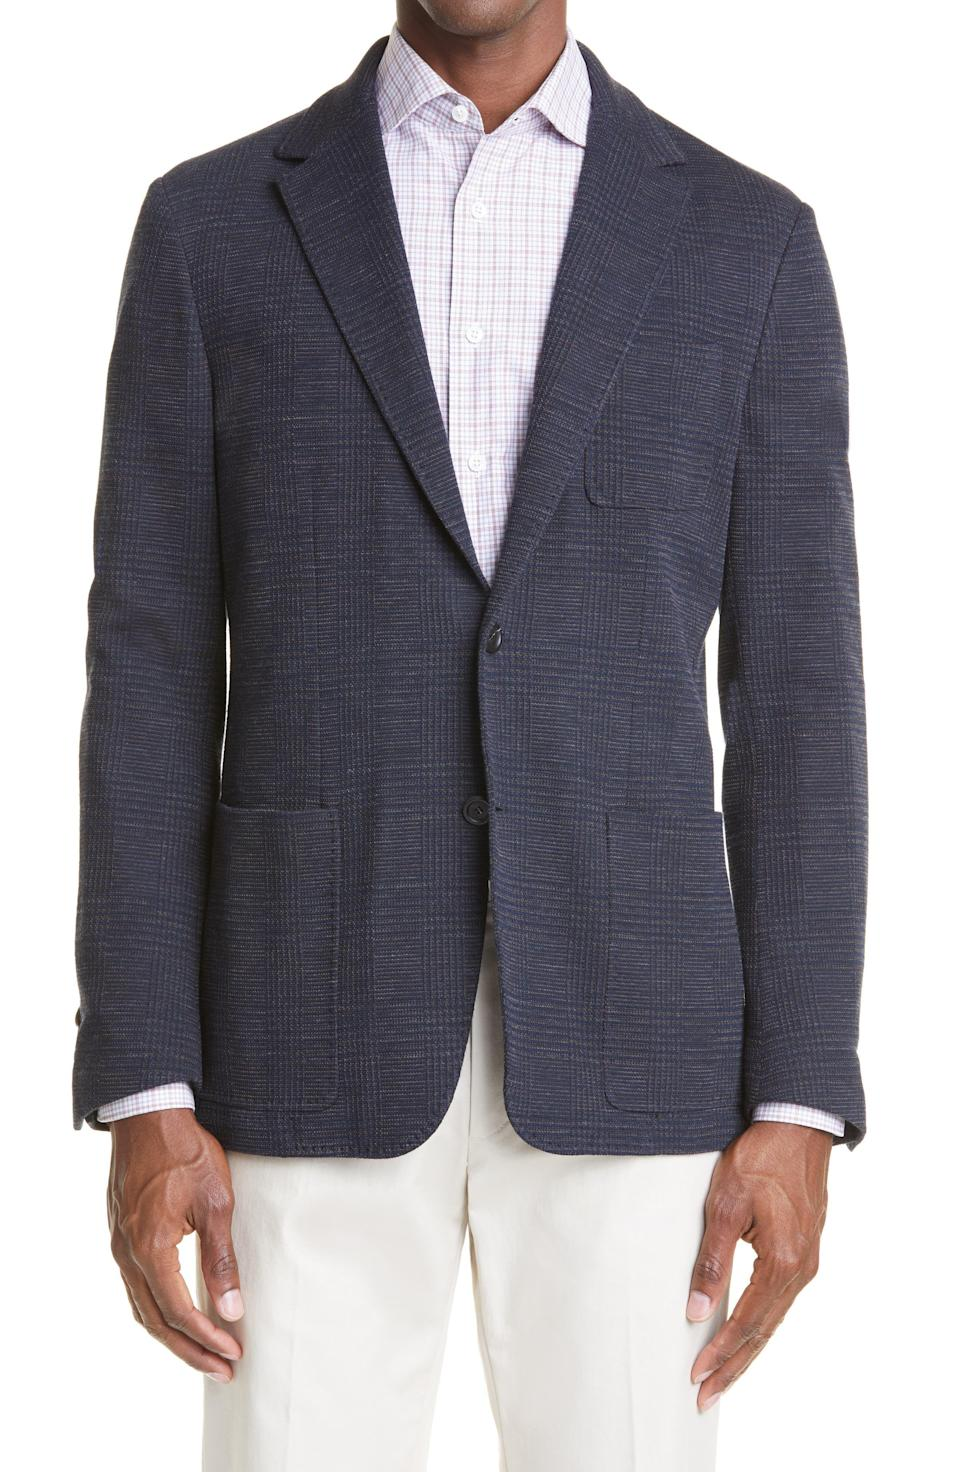 """<p><strong>Canali</strong></p><p>nordstrom.com</p><p><strong>$1045.00</strong></p><p><a href=""""https://go.redirectingat.com?id=74968X1596630&url=https%3A%2F%2Fwww.nordstrom.com%2Fs%2Fcanali-trim-fit-plaid-jersey-sport-coat%2F5871342&sref=https%3A%2F%2Fwww.menshealth.com%2Ftrending-news%2Fg37636277%2Fhoming-from-work-essentials%2F"""" rel=""""nofollow noopener"""" target=""""_blank"""" data-ylk=""""slk:Shop Now"""" class=""""link rapid-noclick-resp"""">Shop Now</a></p><p>A blazer instantly dresses up your appearance. This sport jacket has knit fabric and an unconstructed lining, for stretch and flexibility, so it's as cozy as your favorite sweatshirt.</p>"""